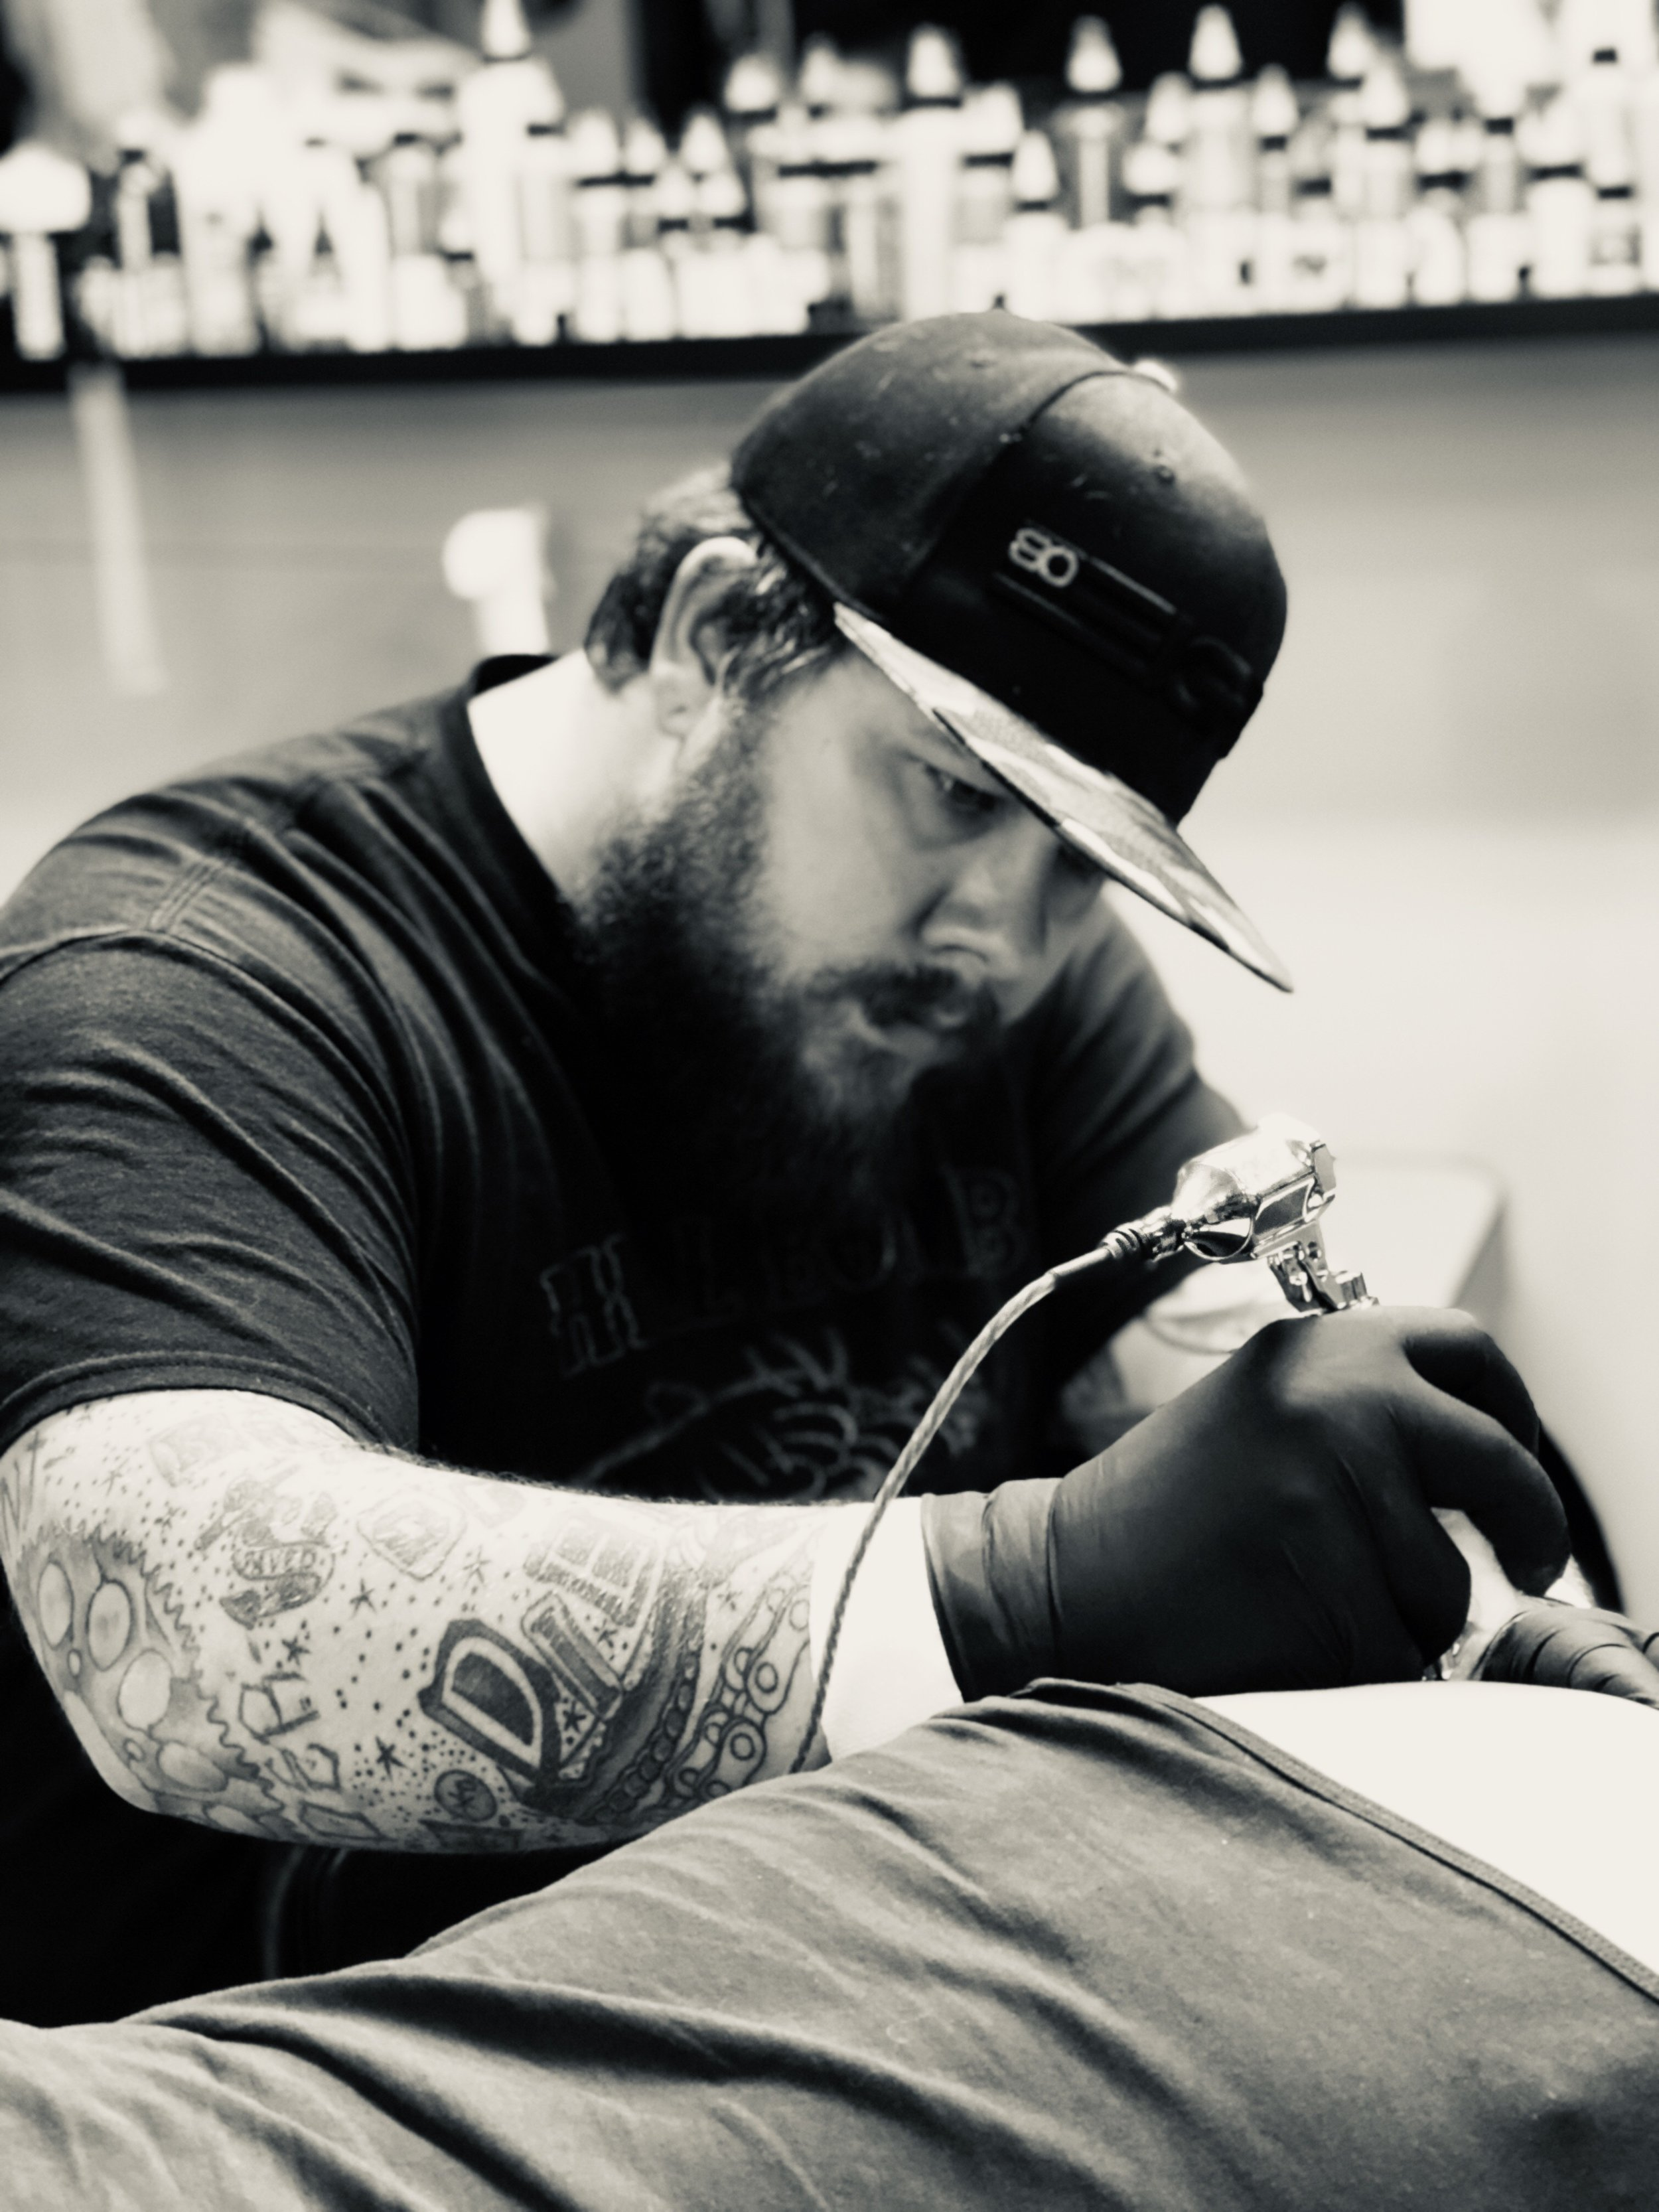 Dooner Sadauskas - Dooner started tattooing in Daytona Beach, FL, but later moved back to his hometown just outside of Pittsburgh, PA where he has been tattooing ever since. He has been tattooing for 13 years and has owned a successful tattoo shop of his own for the past 10 years, called Up In Arms Tattoo. He is definitely well-known for his work with realistic black and gray portraits, but can do any style you throw at him. Recently, Dooner has taken a huge interest for single needle, fine line tattoos. Click his picture to check out his work.